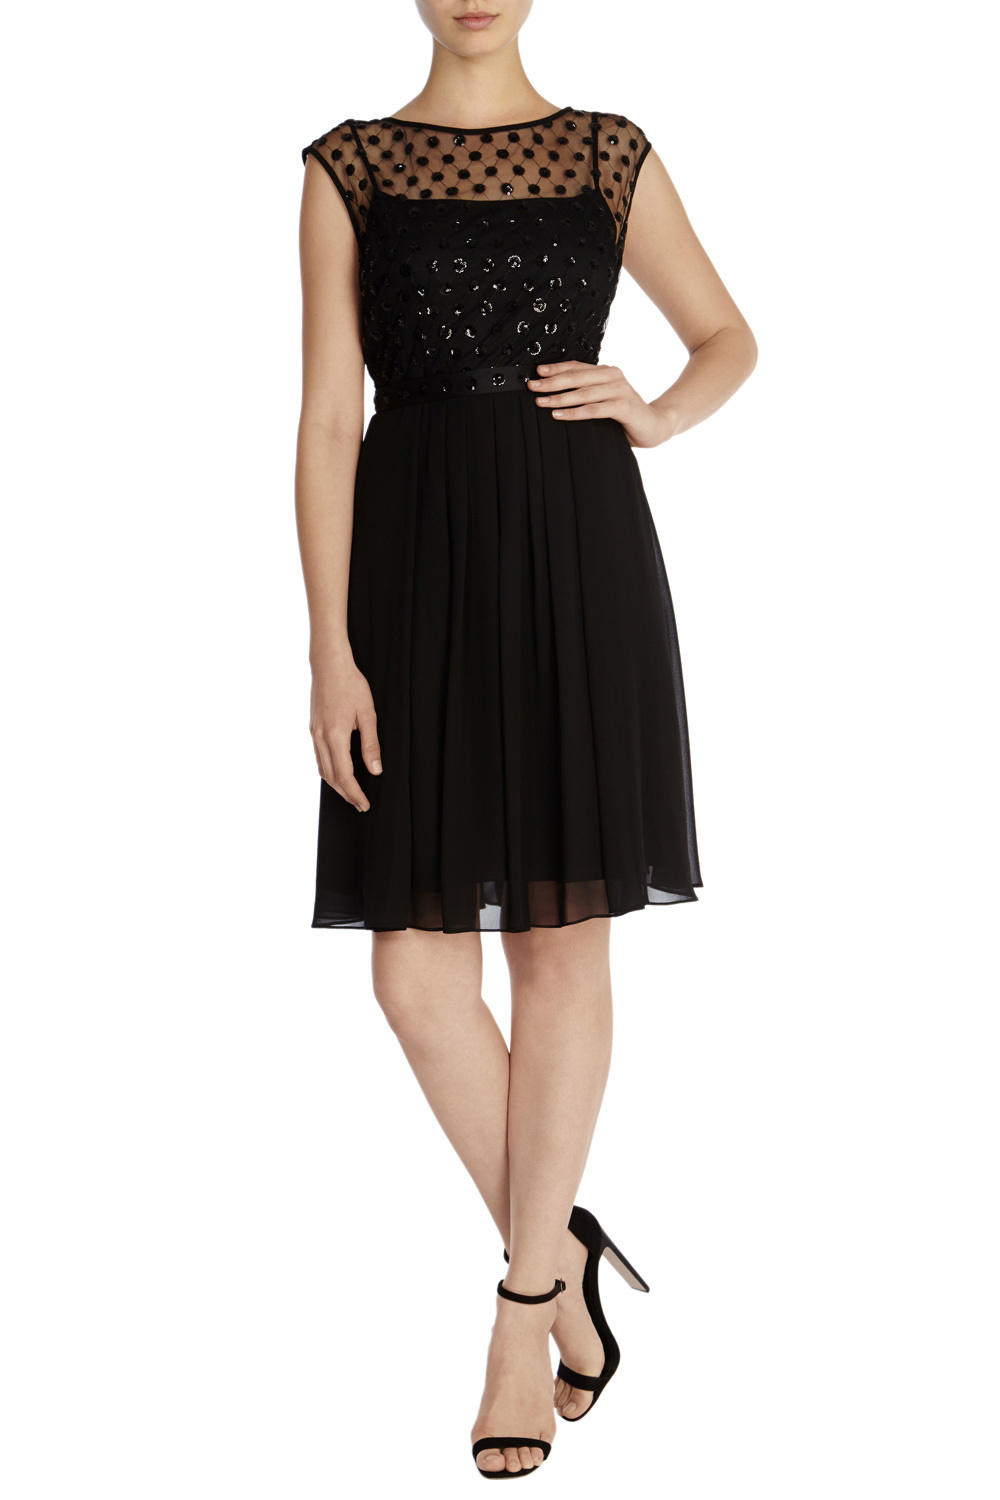 Lori Lee Cluster Short Dress - neckline: slash/boat neckline; sleeve style: capped; pattern: plain; bust detail: sheer at bust; predominant colour: black; occasions: evening; length: just above the knee; fit: fitted at waist & bust; style: fit & flare; fibres: polyester/polyamide - 100%; sleeve length: short sleeve; texture group: crepes; pattern type: fabric; embellishment: beading; season: a/w 2015; wardrobe: event